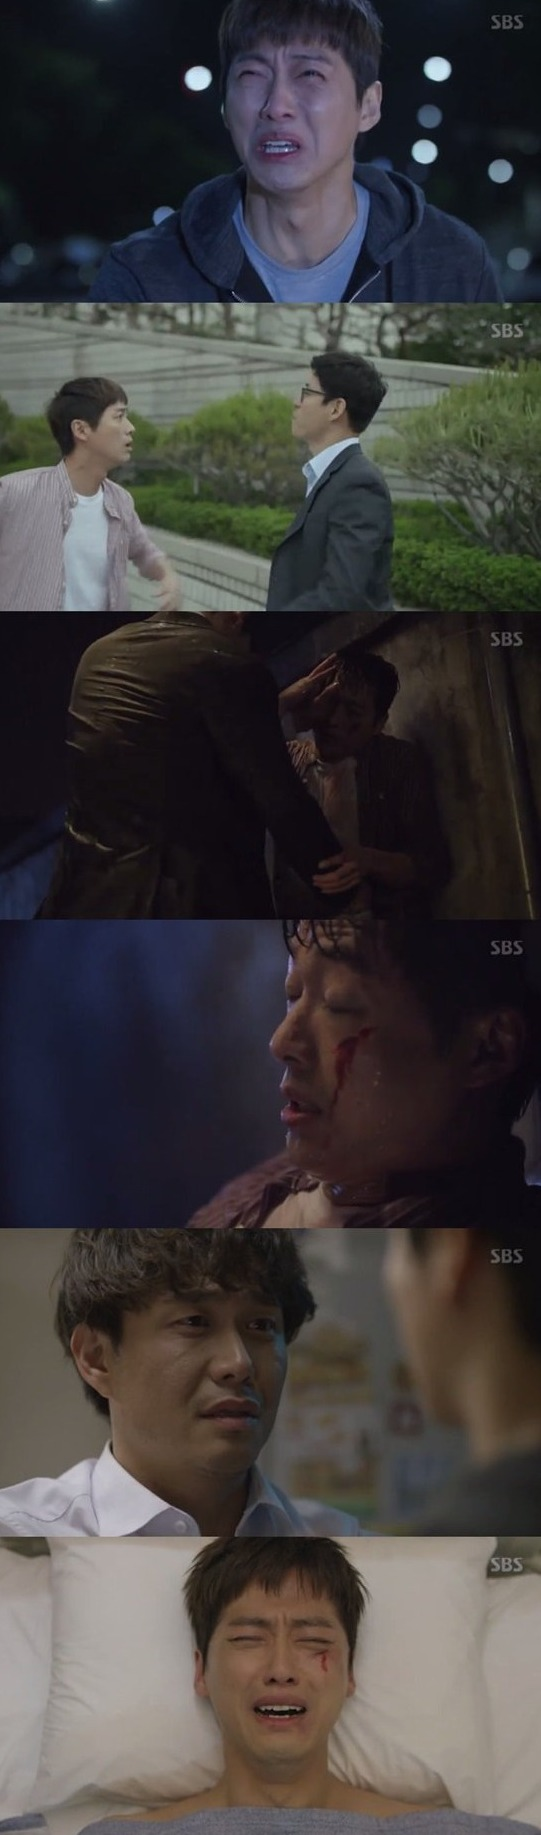 [Spoiler] Added episodes 3 and 4 captures for the Korean drama 'Falsify'